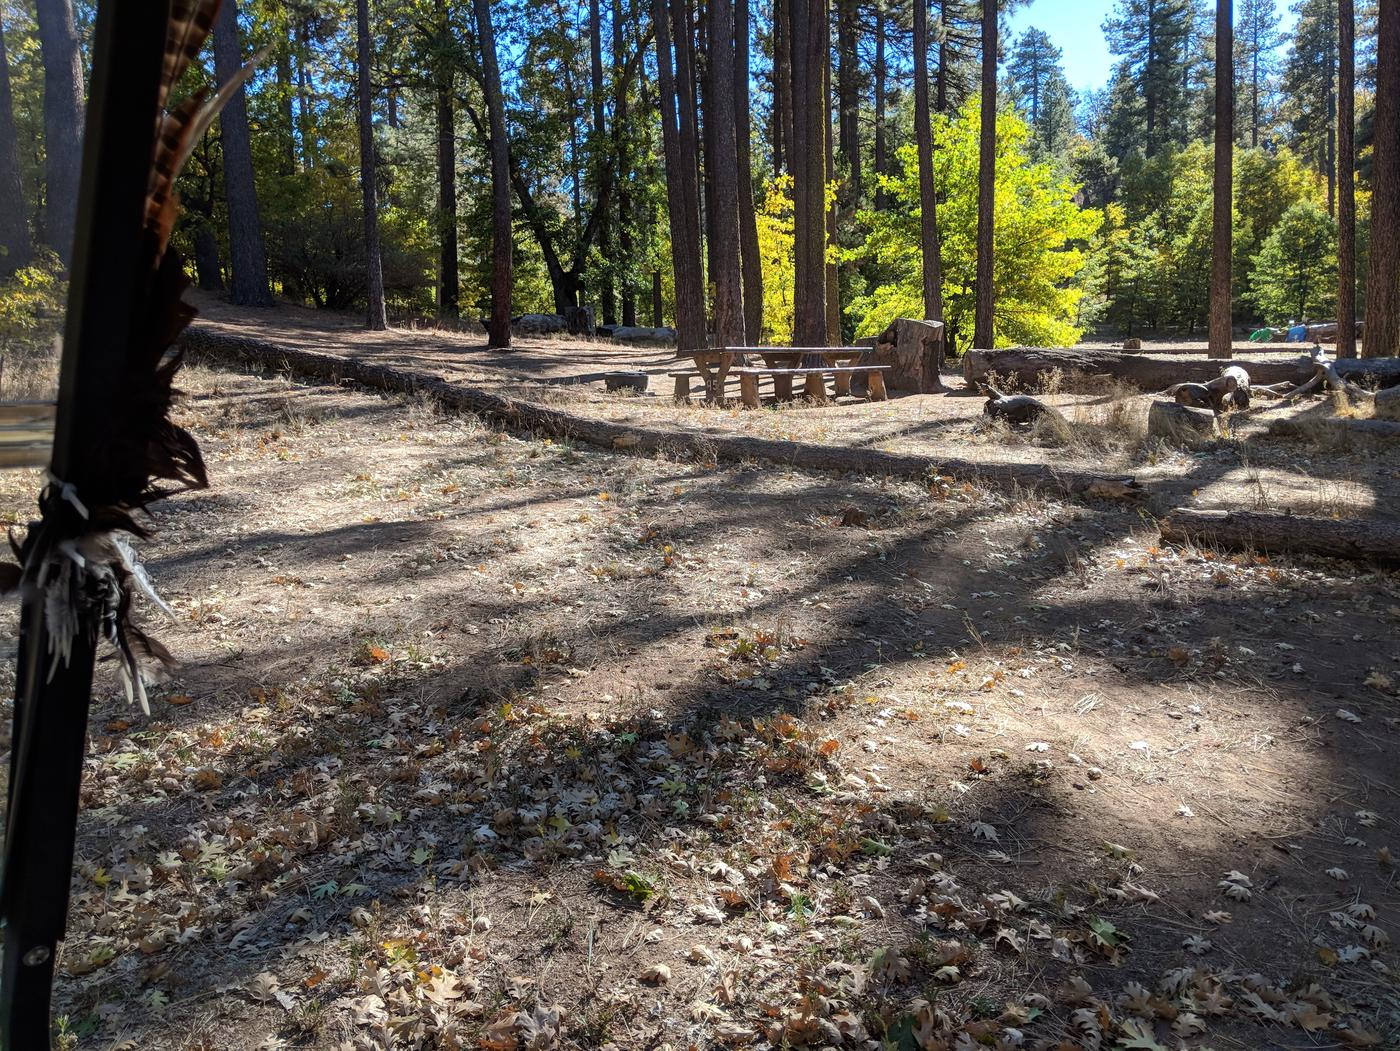 Laguna Campground site #95 wooded camping space view and picnic area.